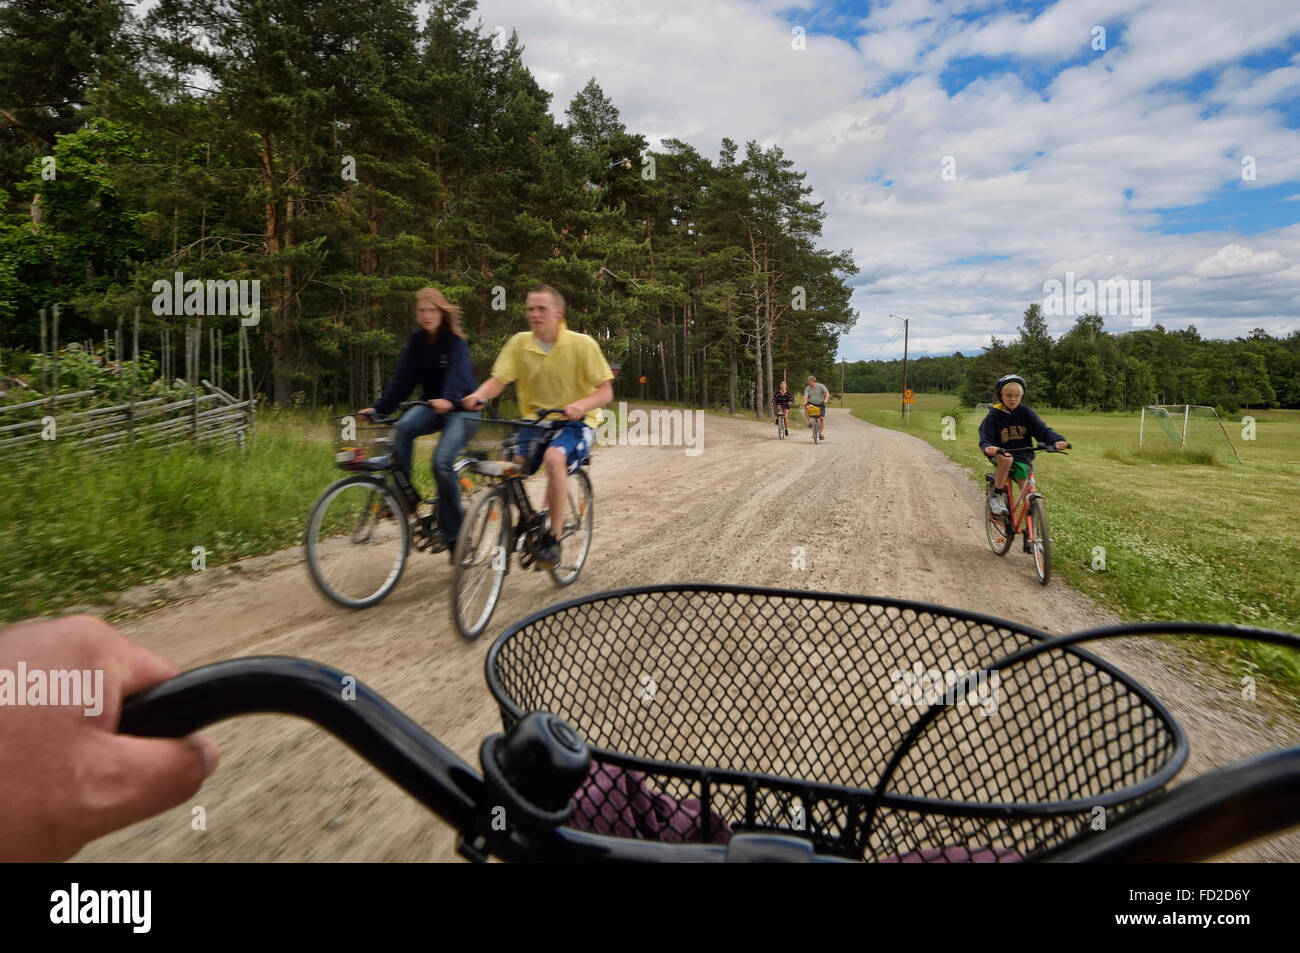 Cyclists on Utö  island. Stockholm archipelago. Sweden - Stock Image